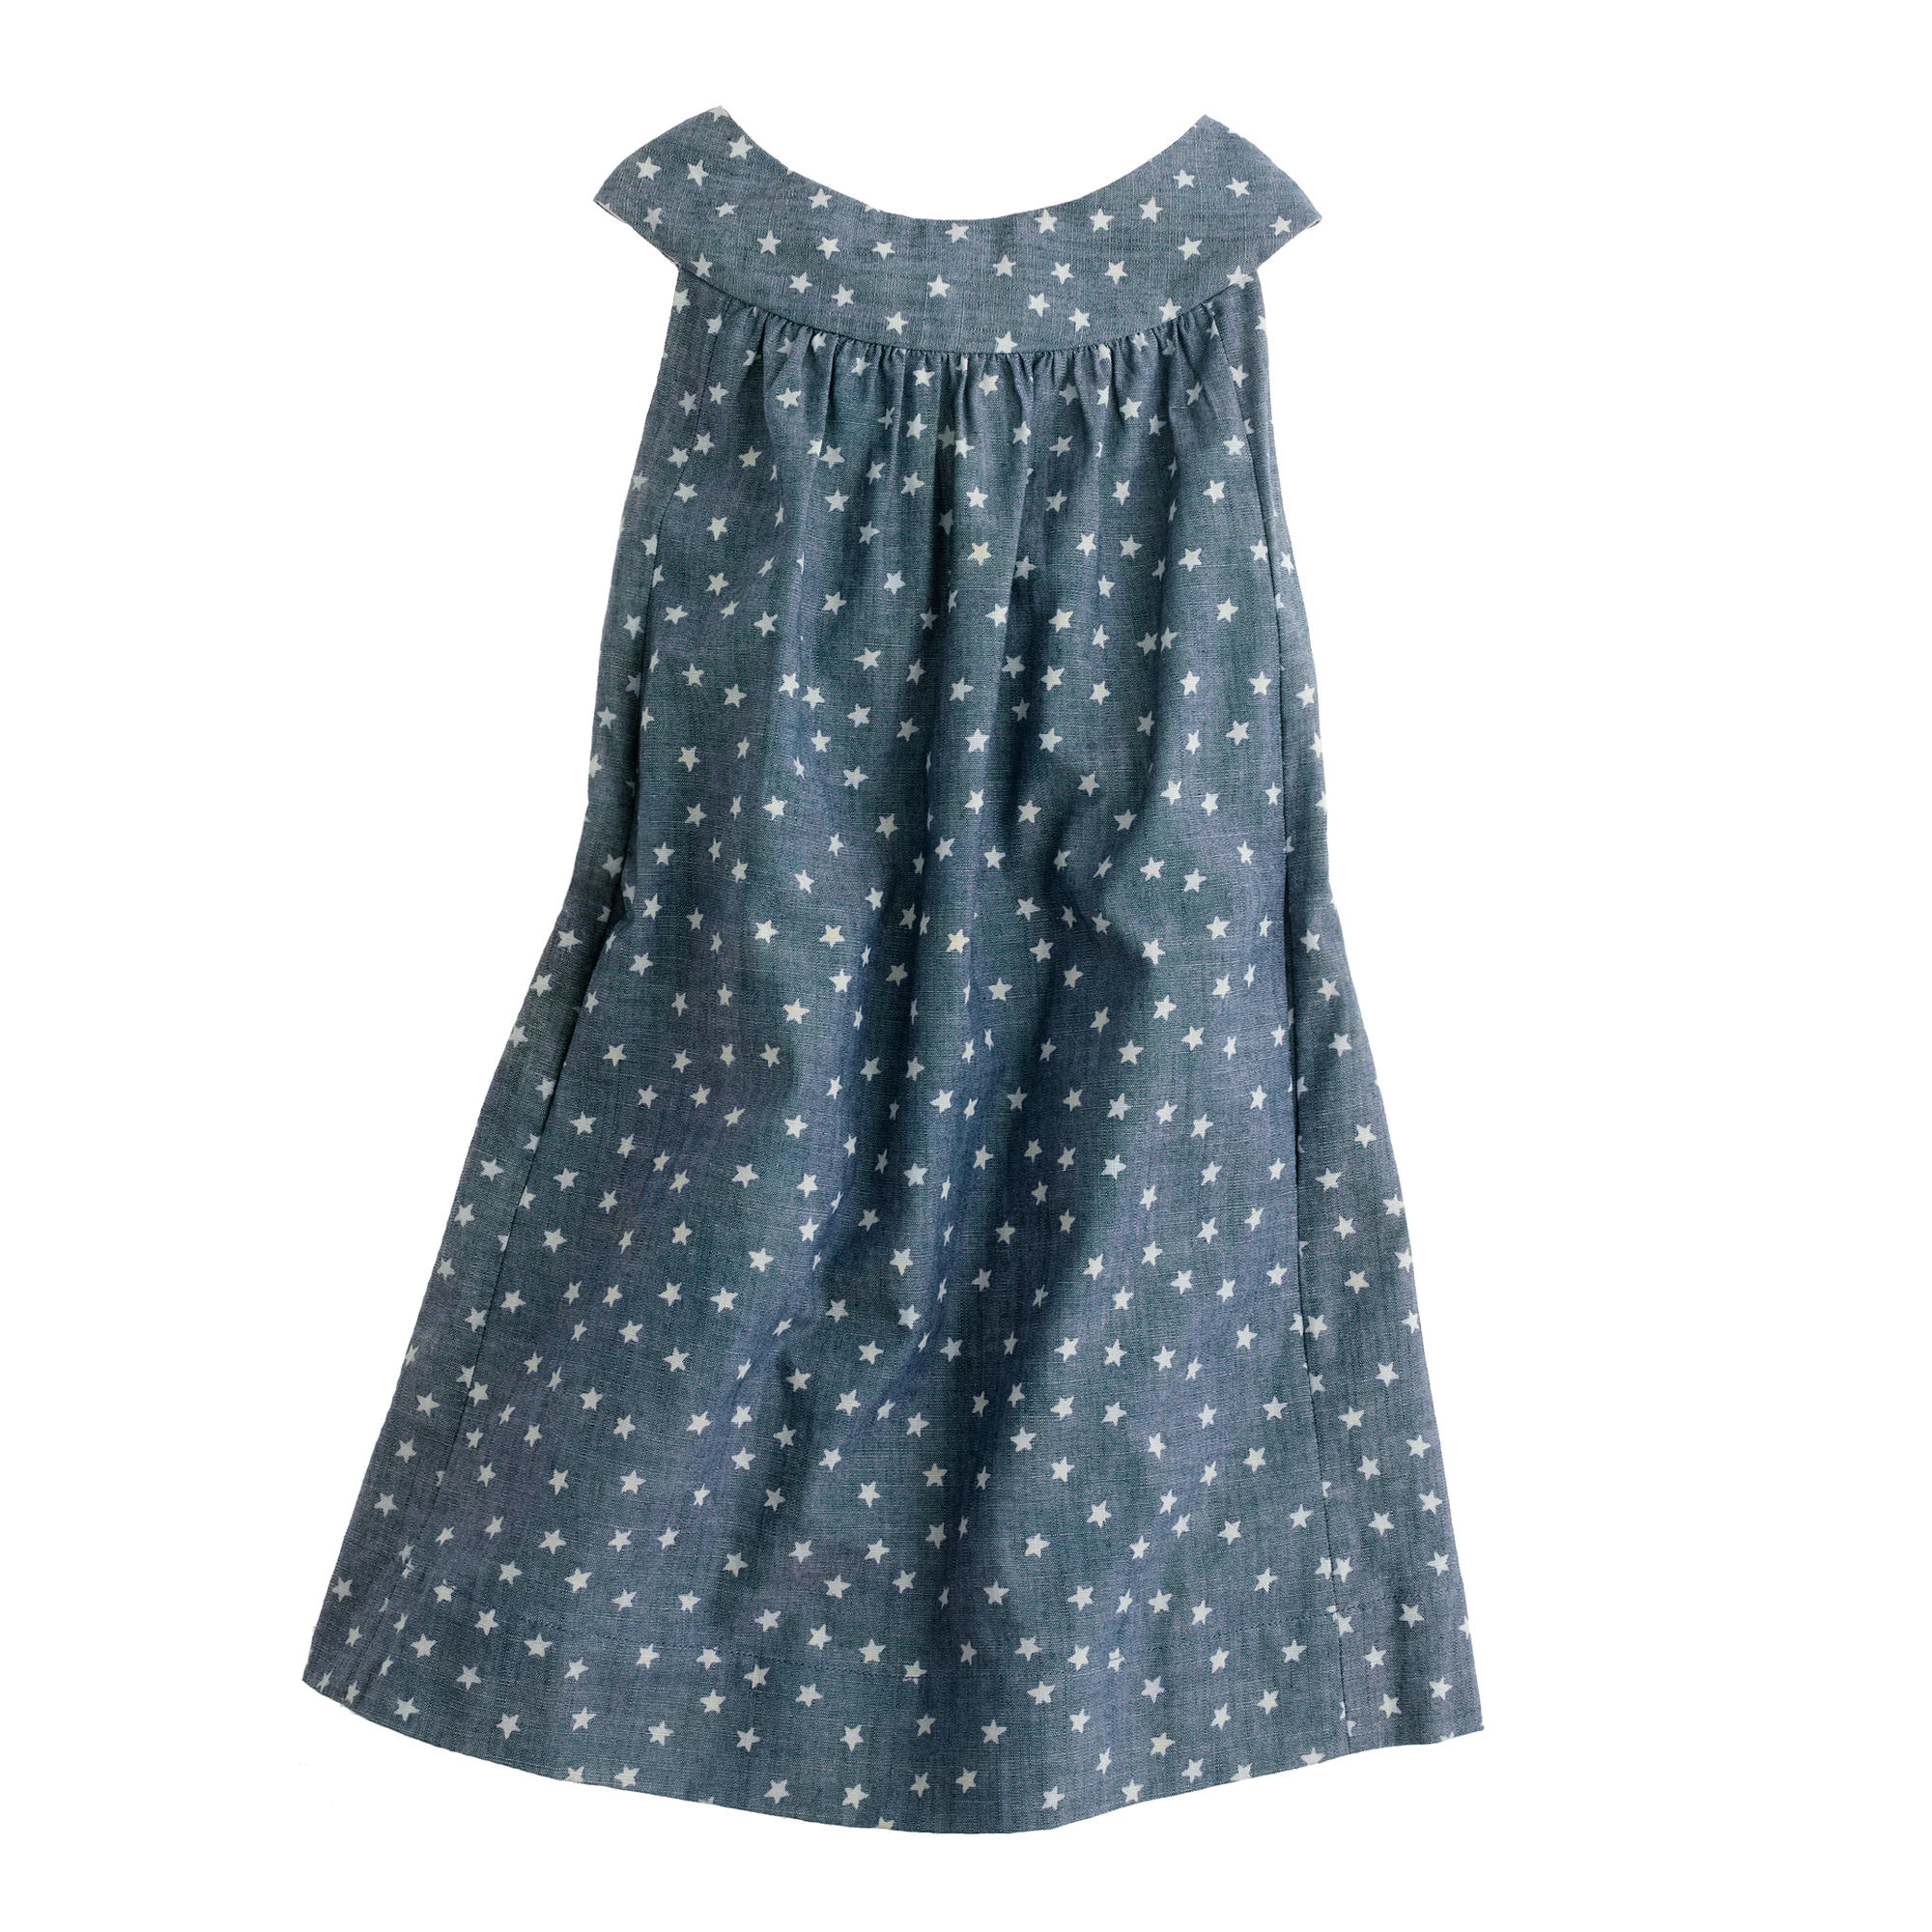 Girls' star chambray dress :